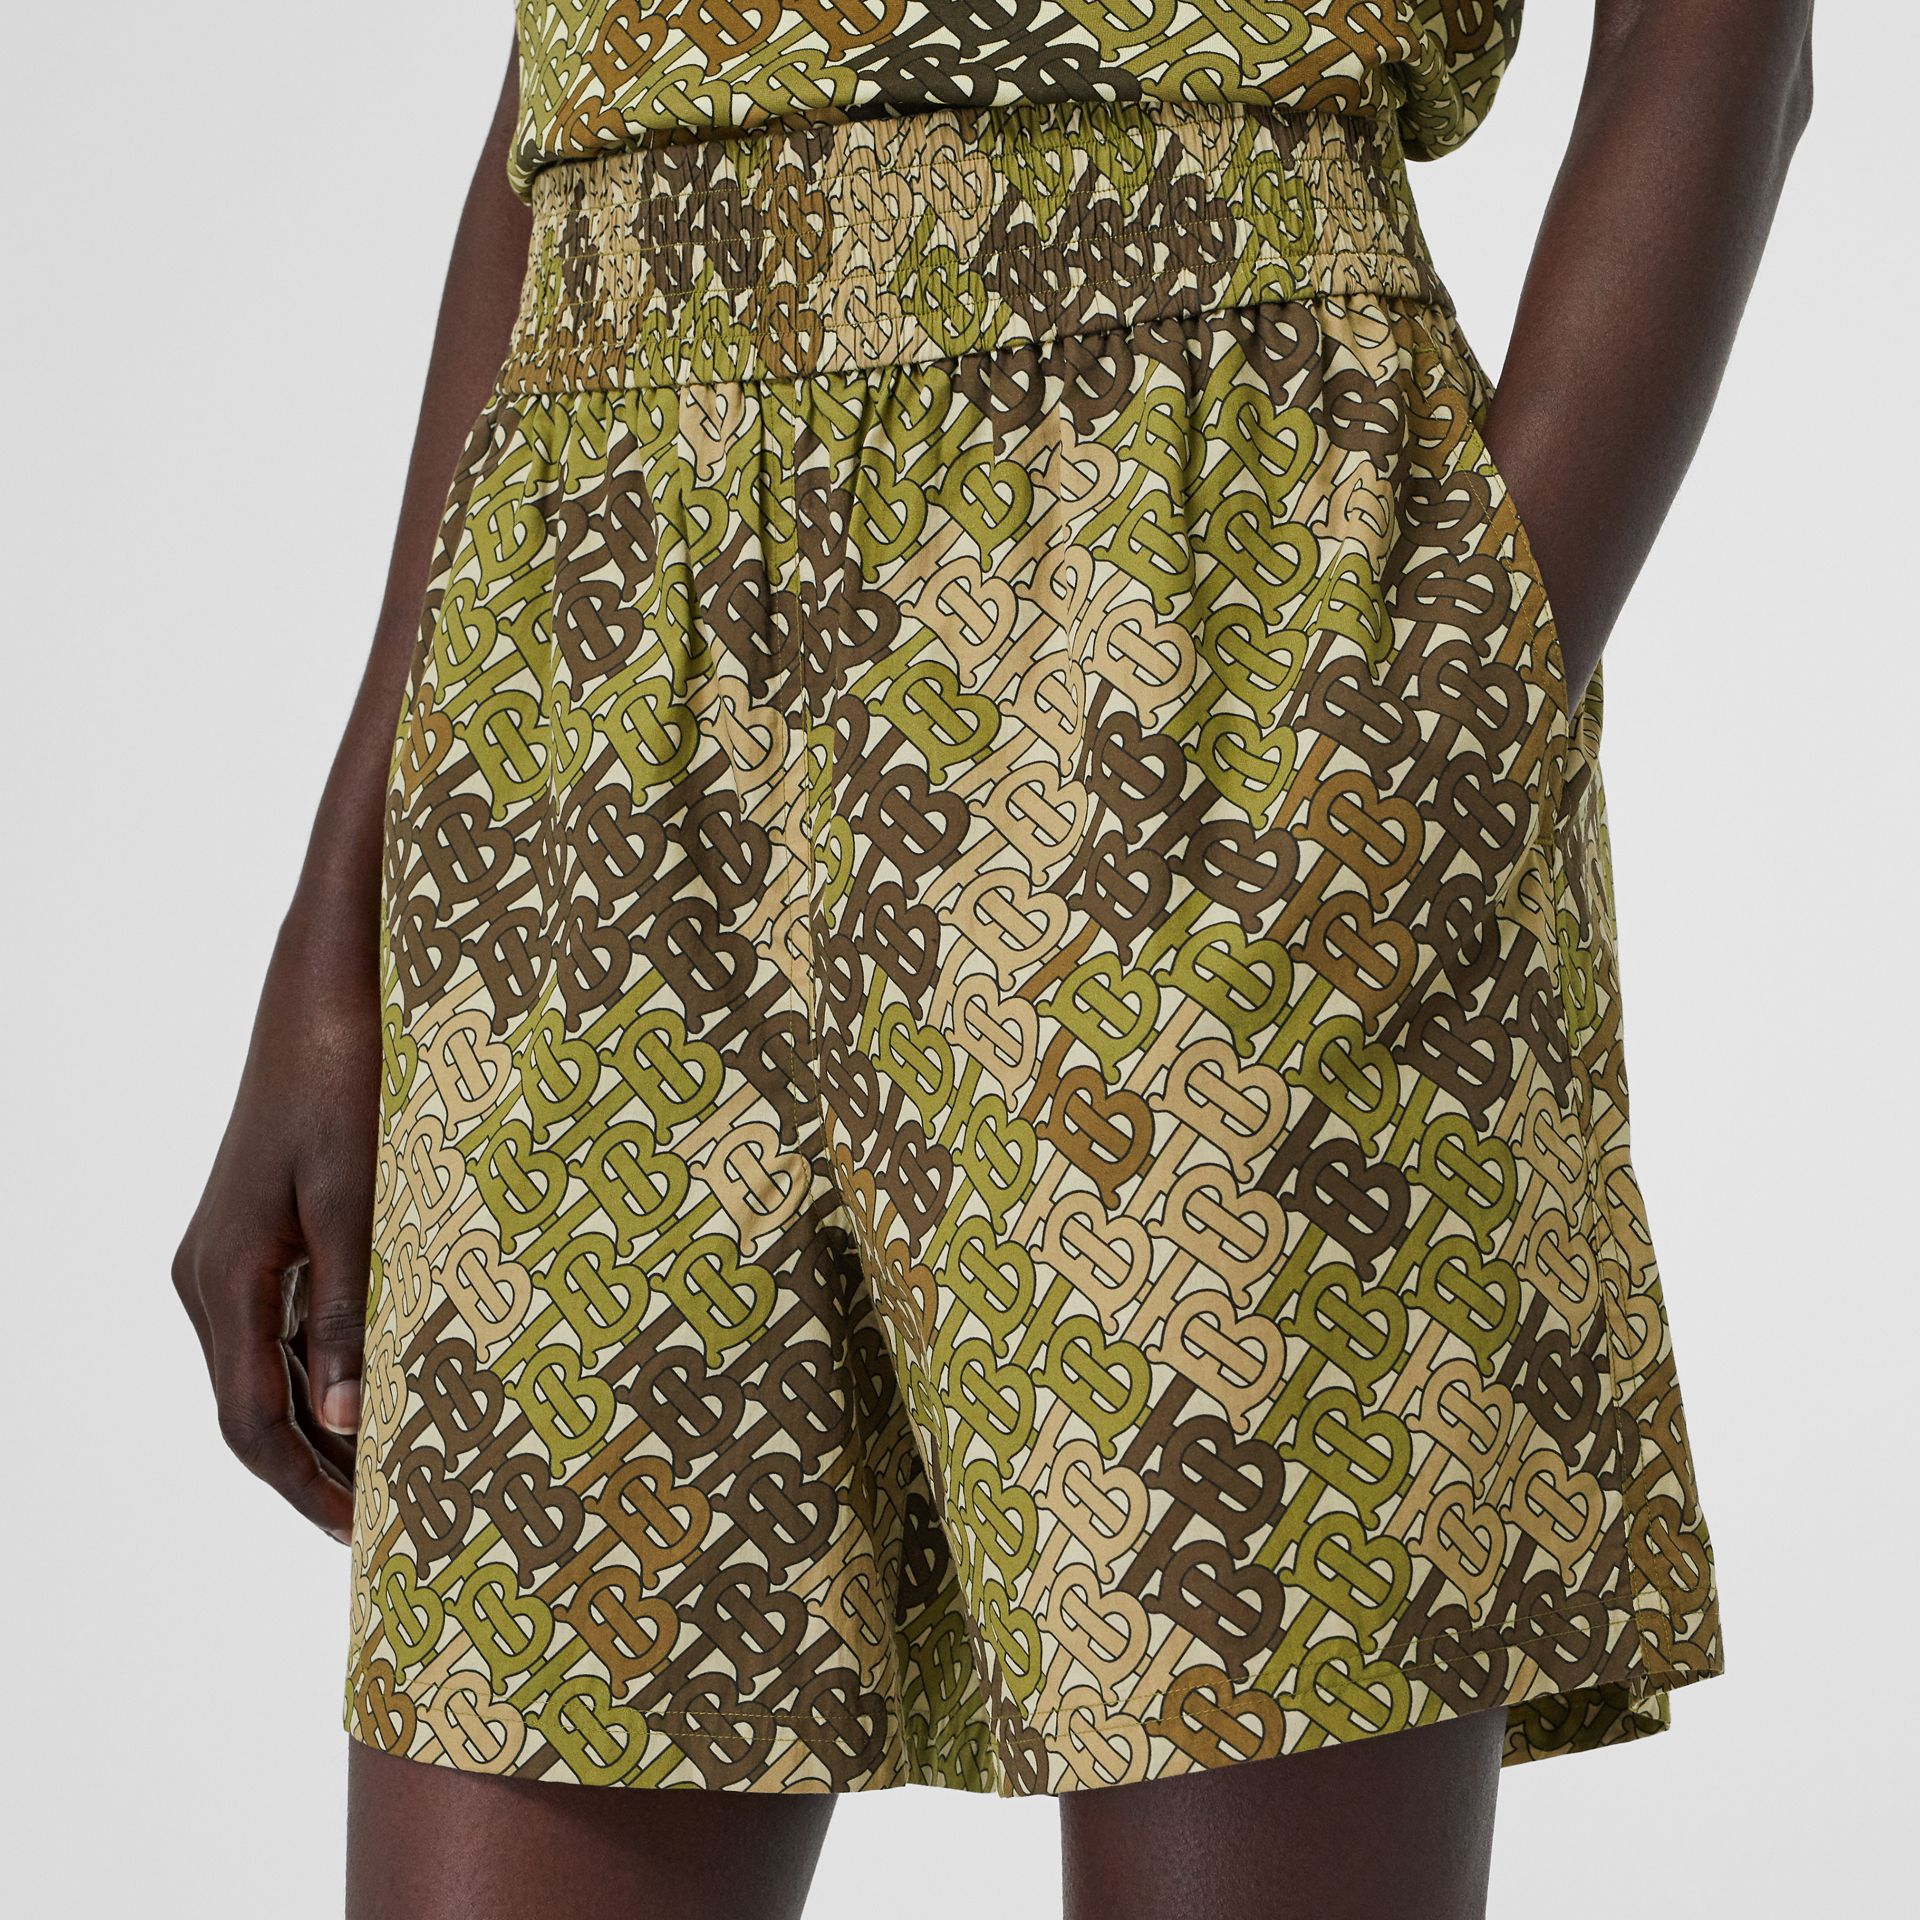 Monogram Print Cotton Poplin Shorts in Khaki Green | Burberry - gallery image 1